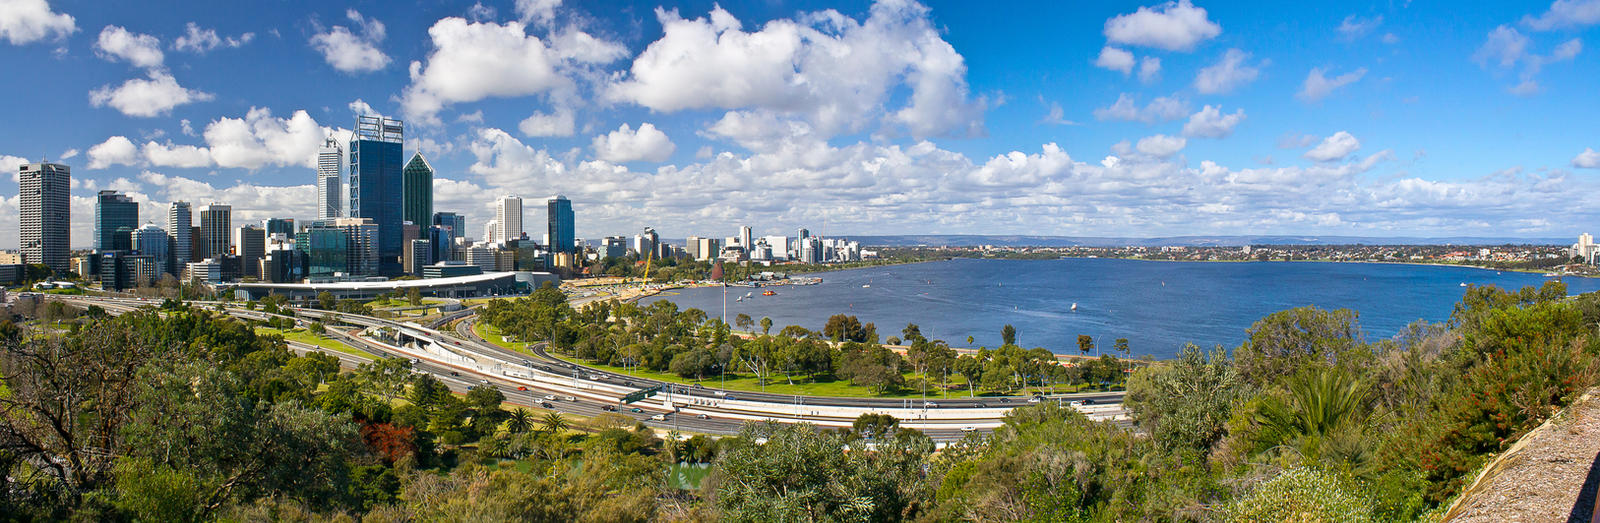 My City: Perth and Swan by Labrug